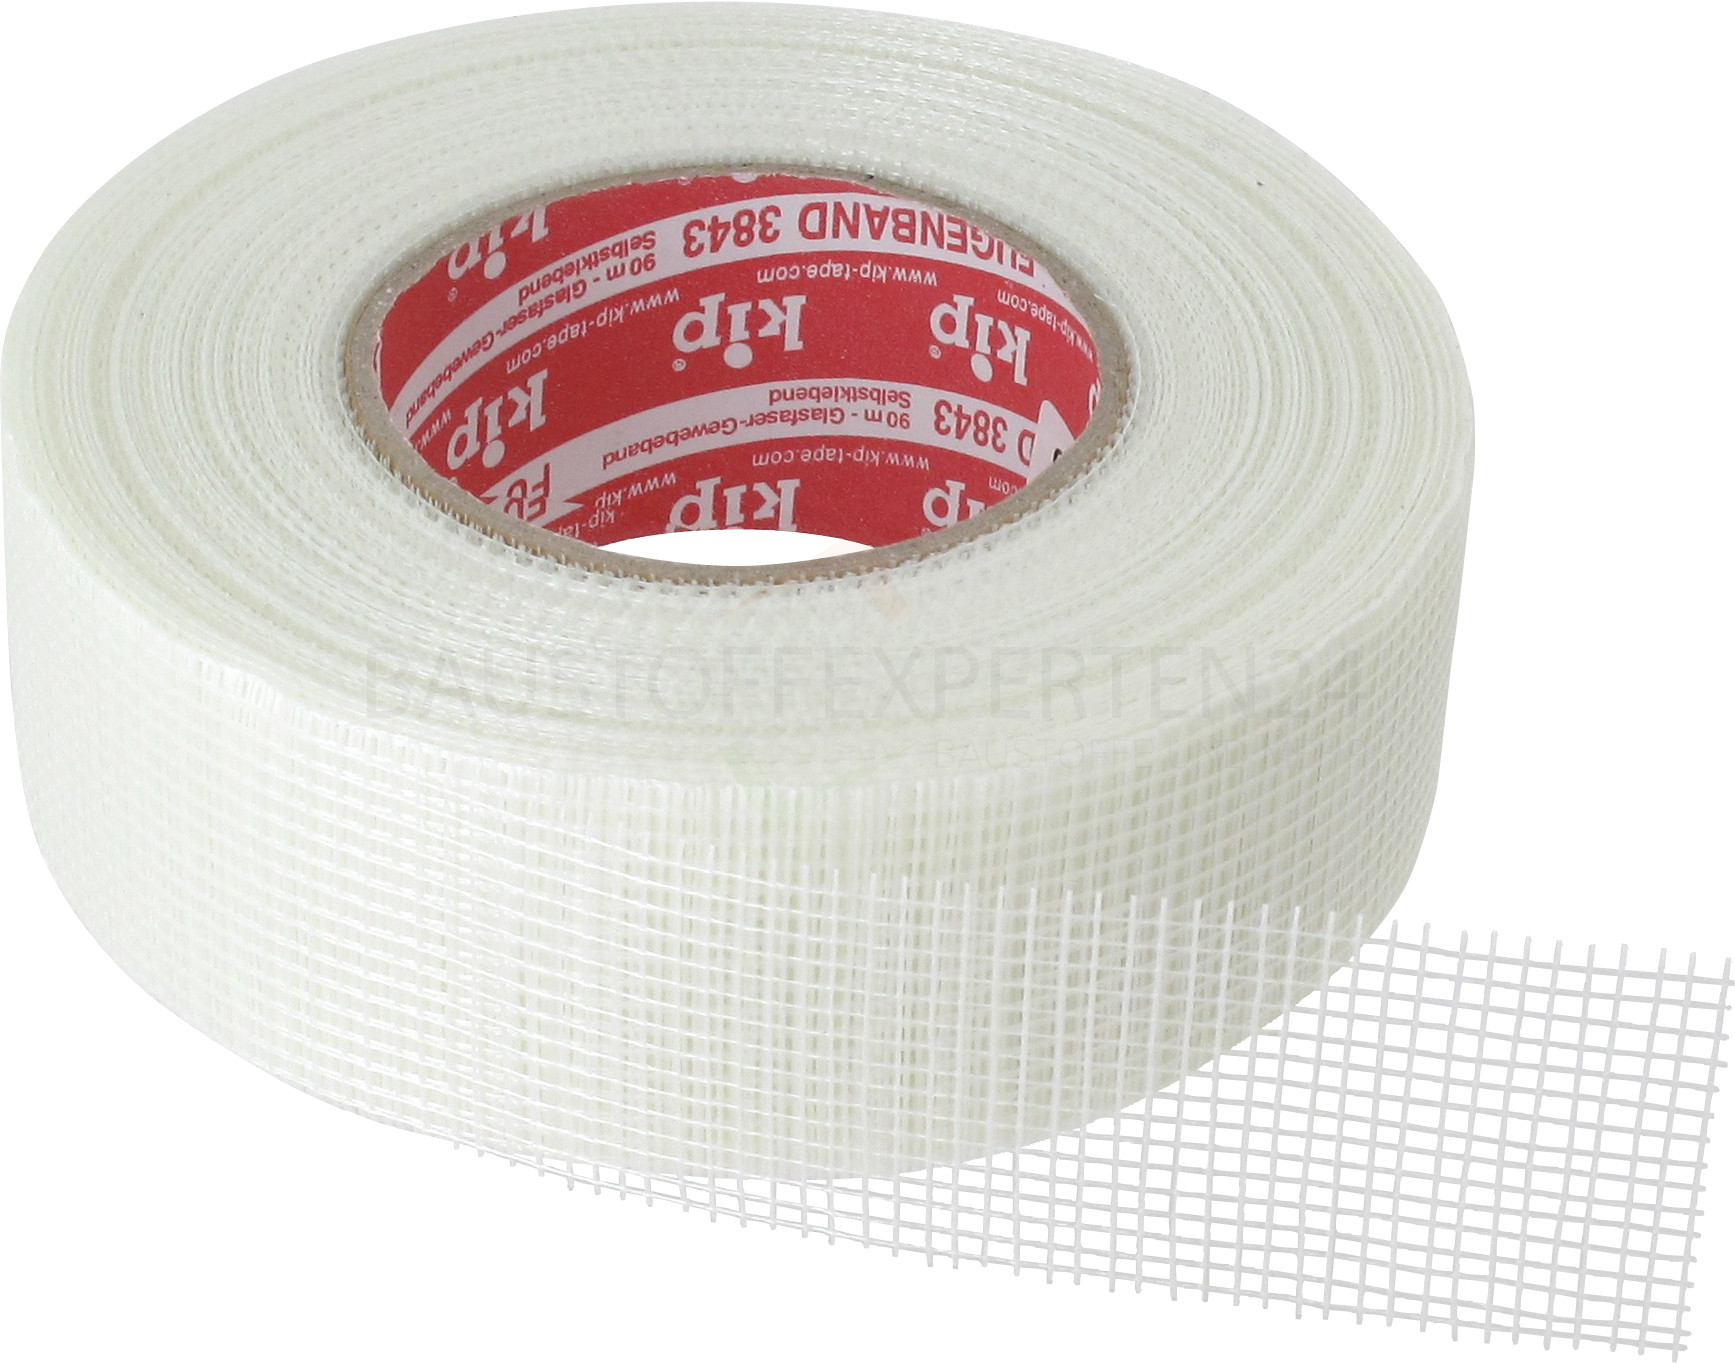 kip - Fugenband 3843, Glasfaserband, 48mm x 90m